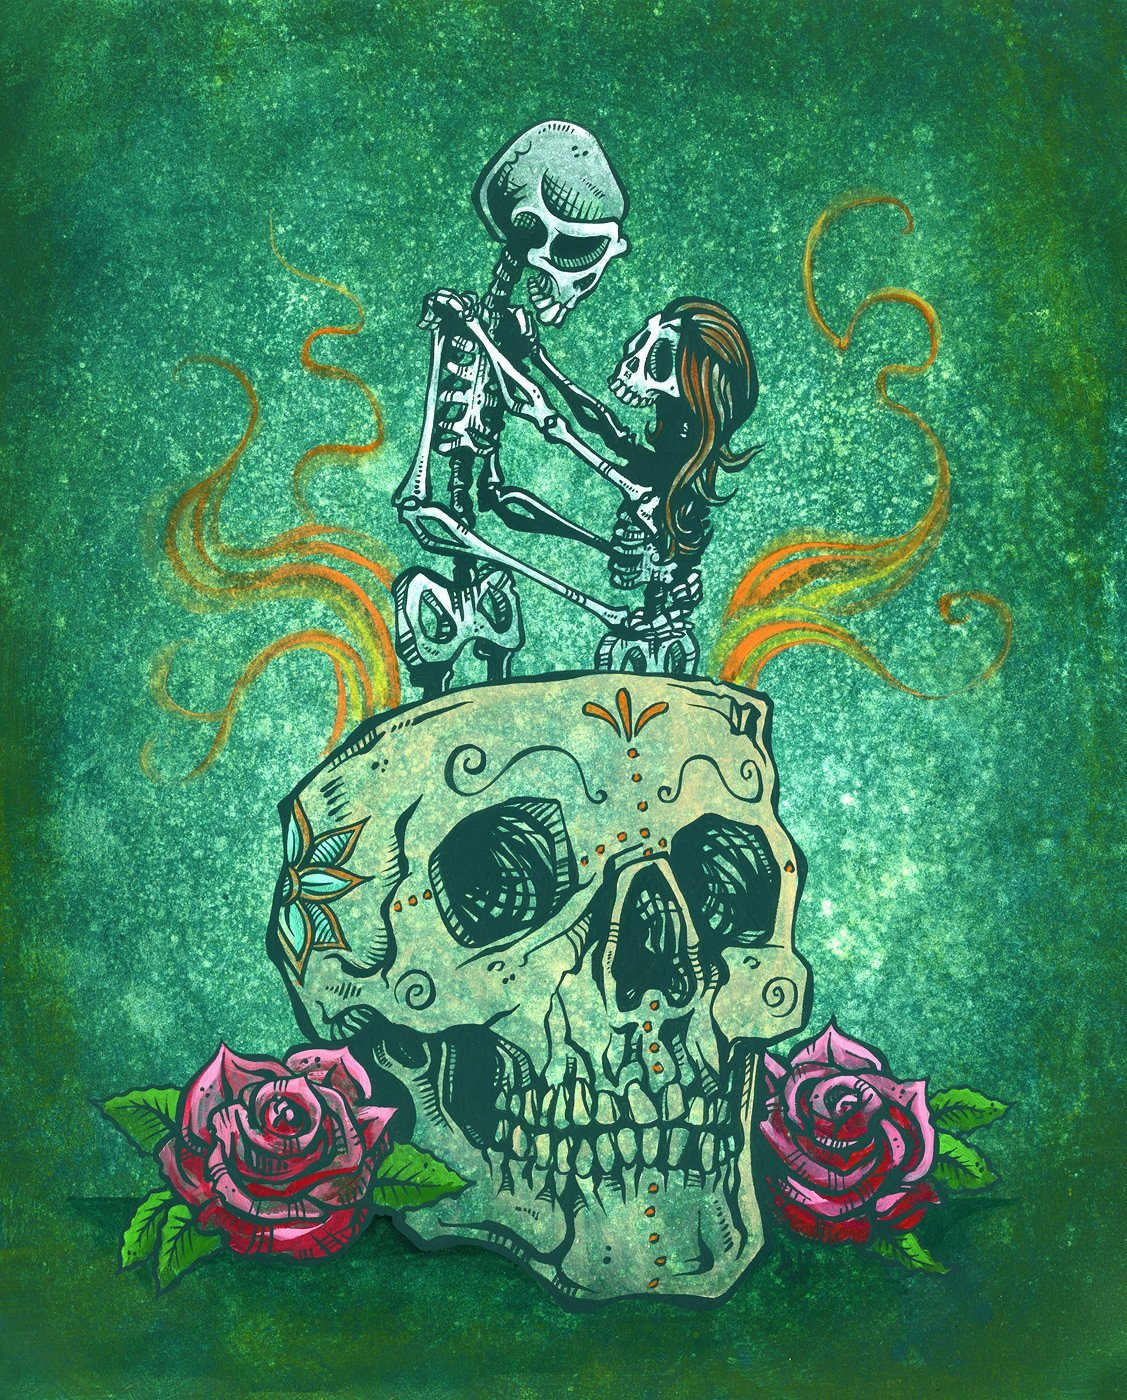 Amor Eterno by Day of the Dead Artist David Lozeau, Dia de los Muertos, Muertos, Sugar Skull